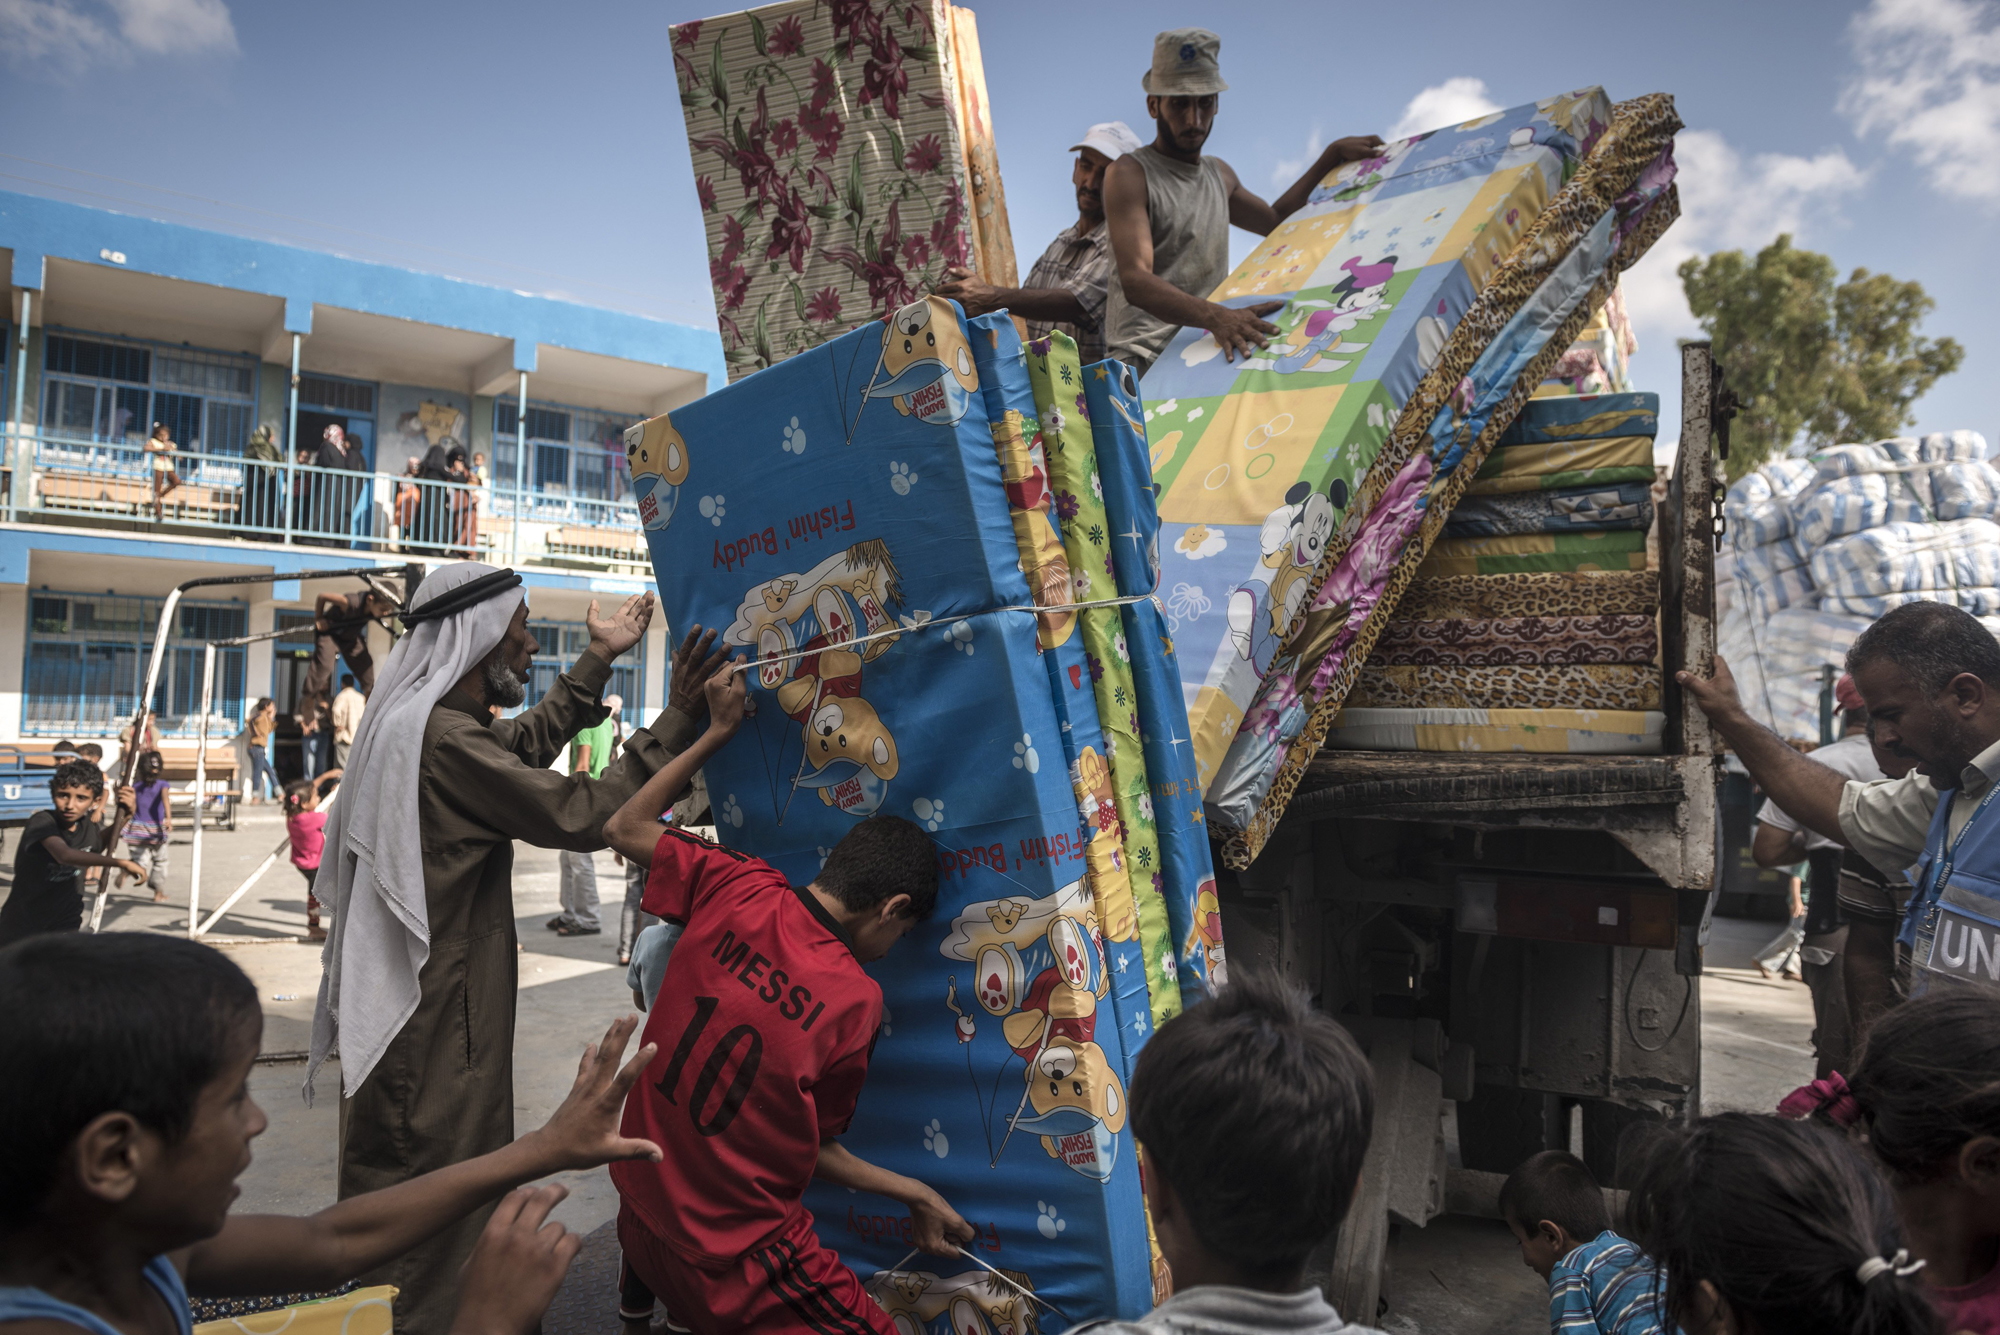 Palestinian refugees unload mattresses at a United Nations shelter in Rafah, Gaza Strip, July 19, 2014.